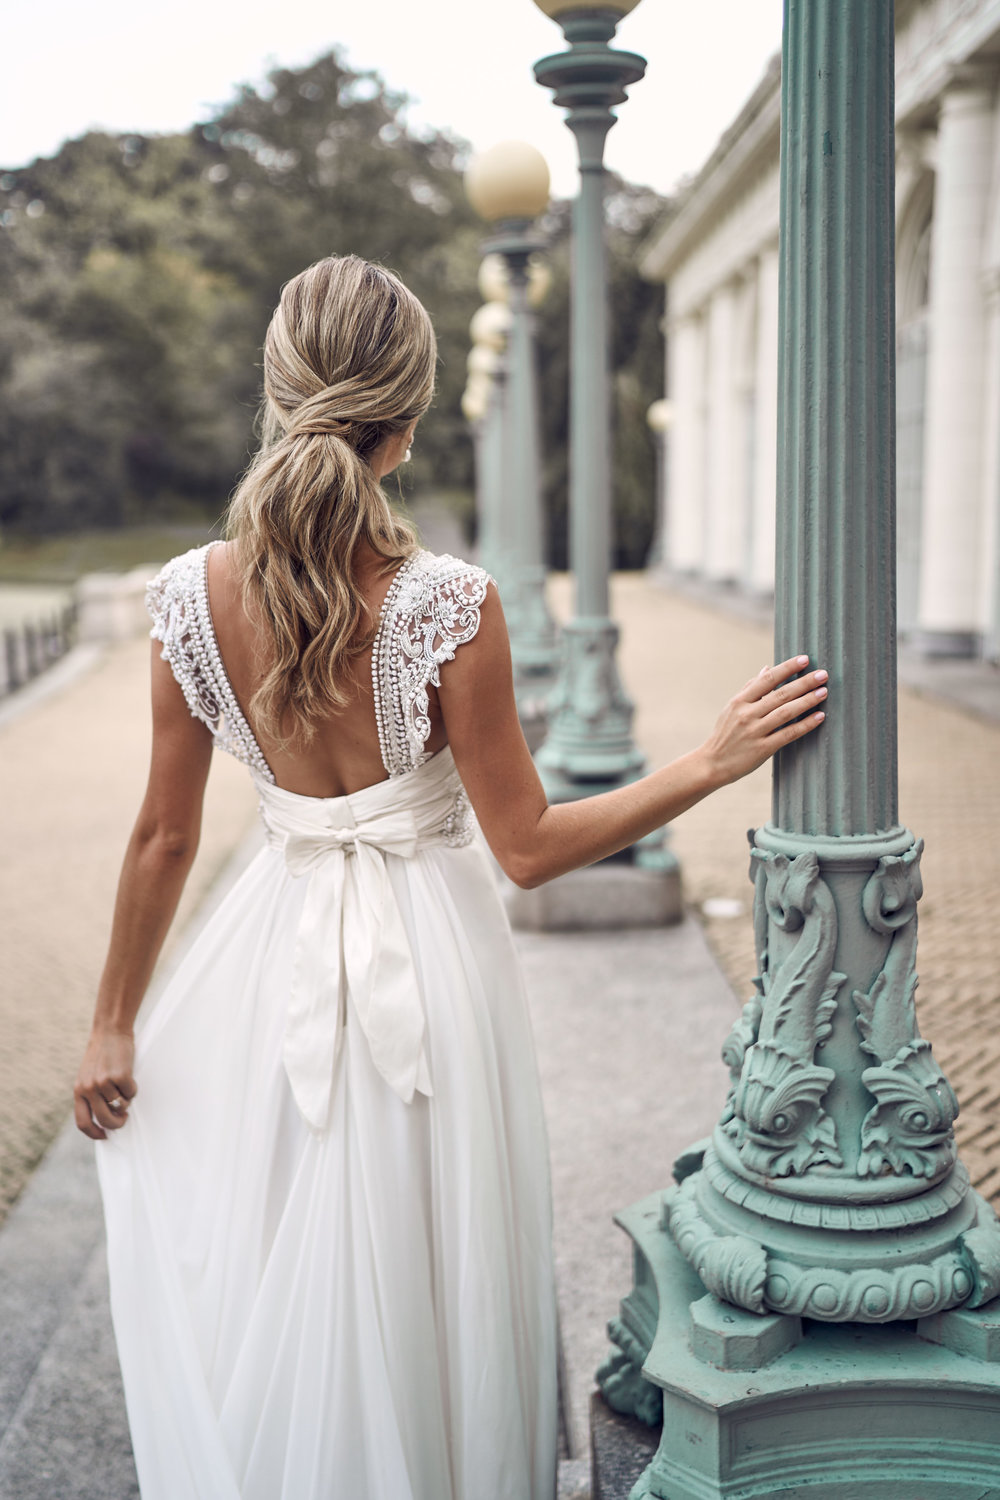 DRESS | SORRENTO